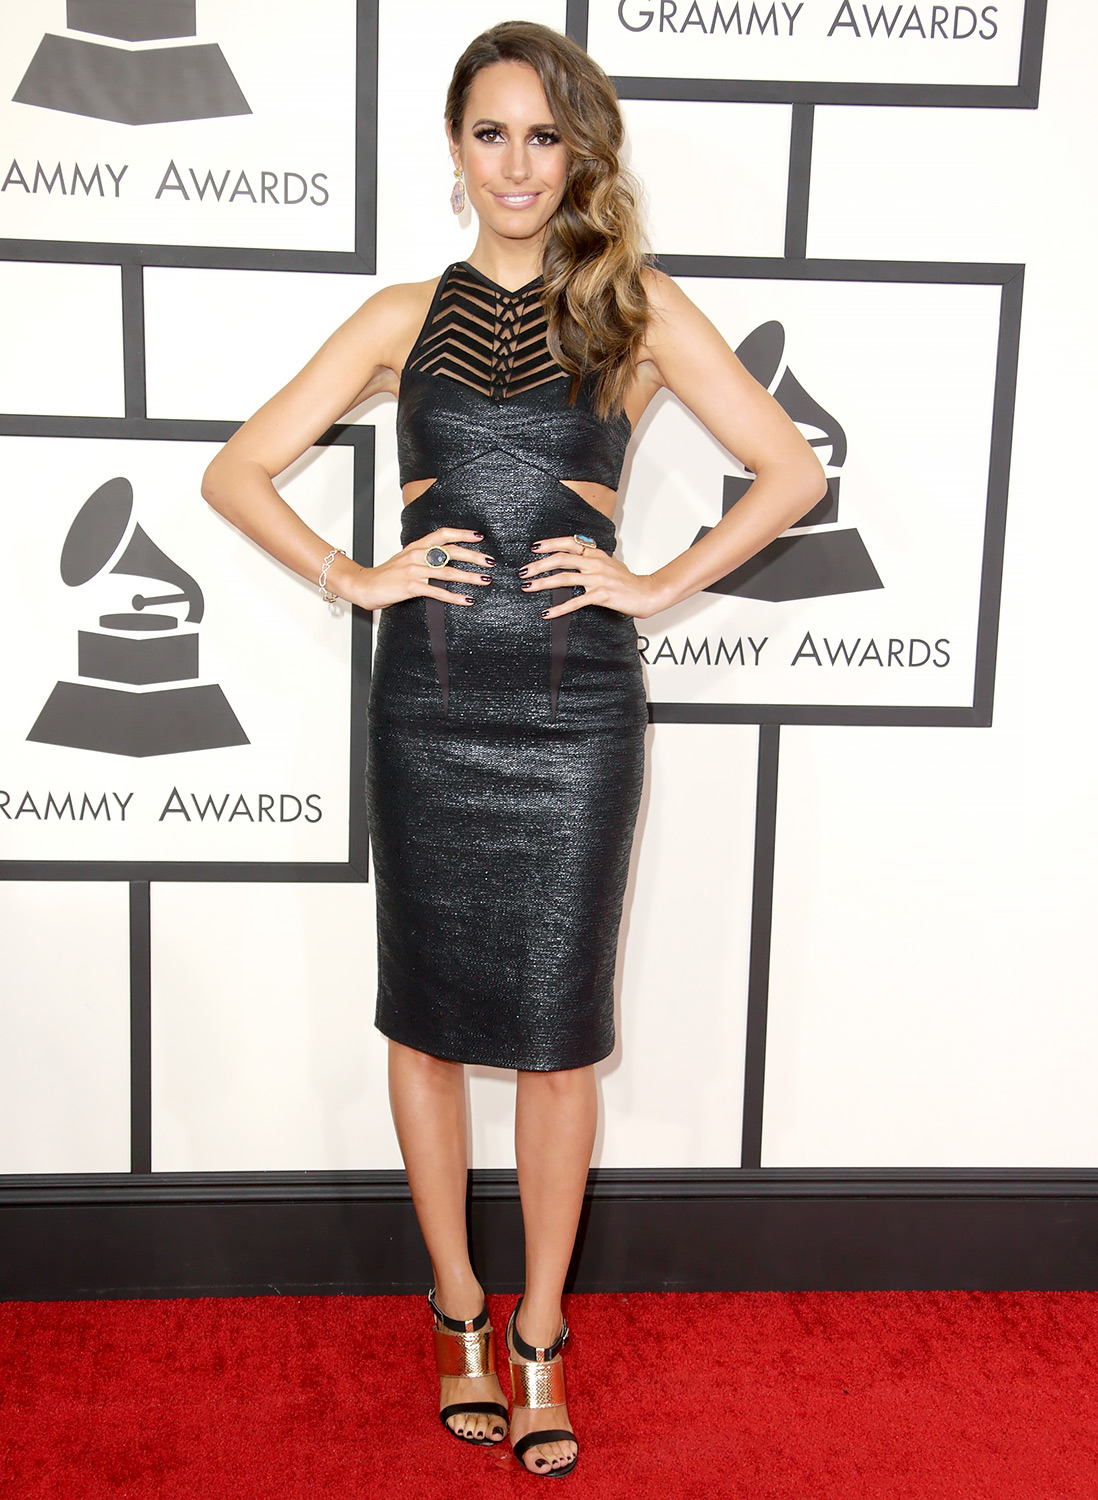 grammys-2014-louise-roe